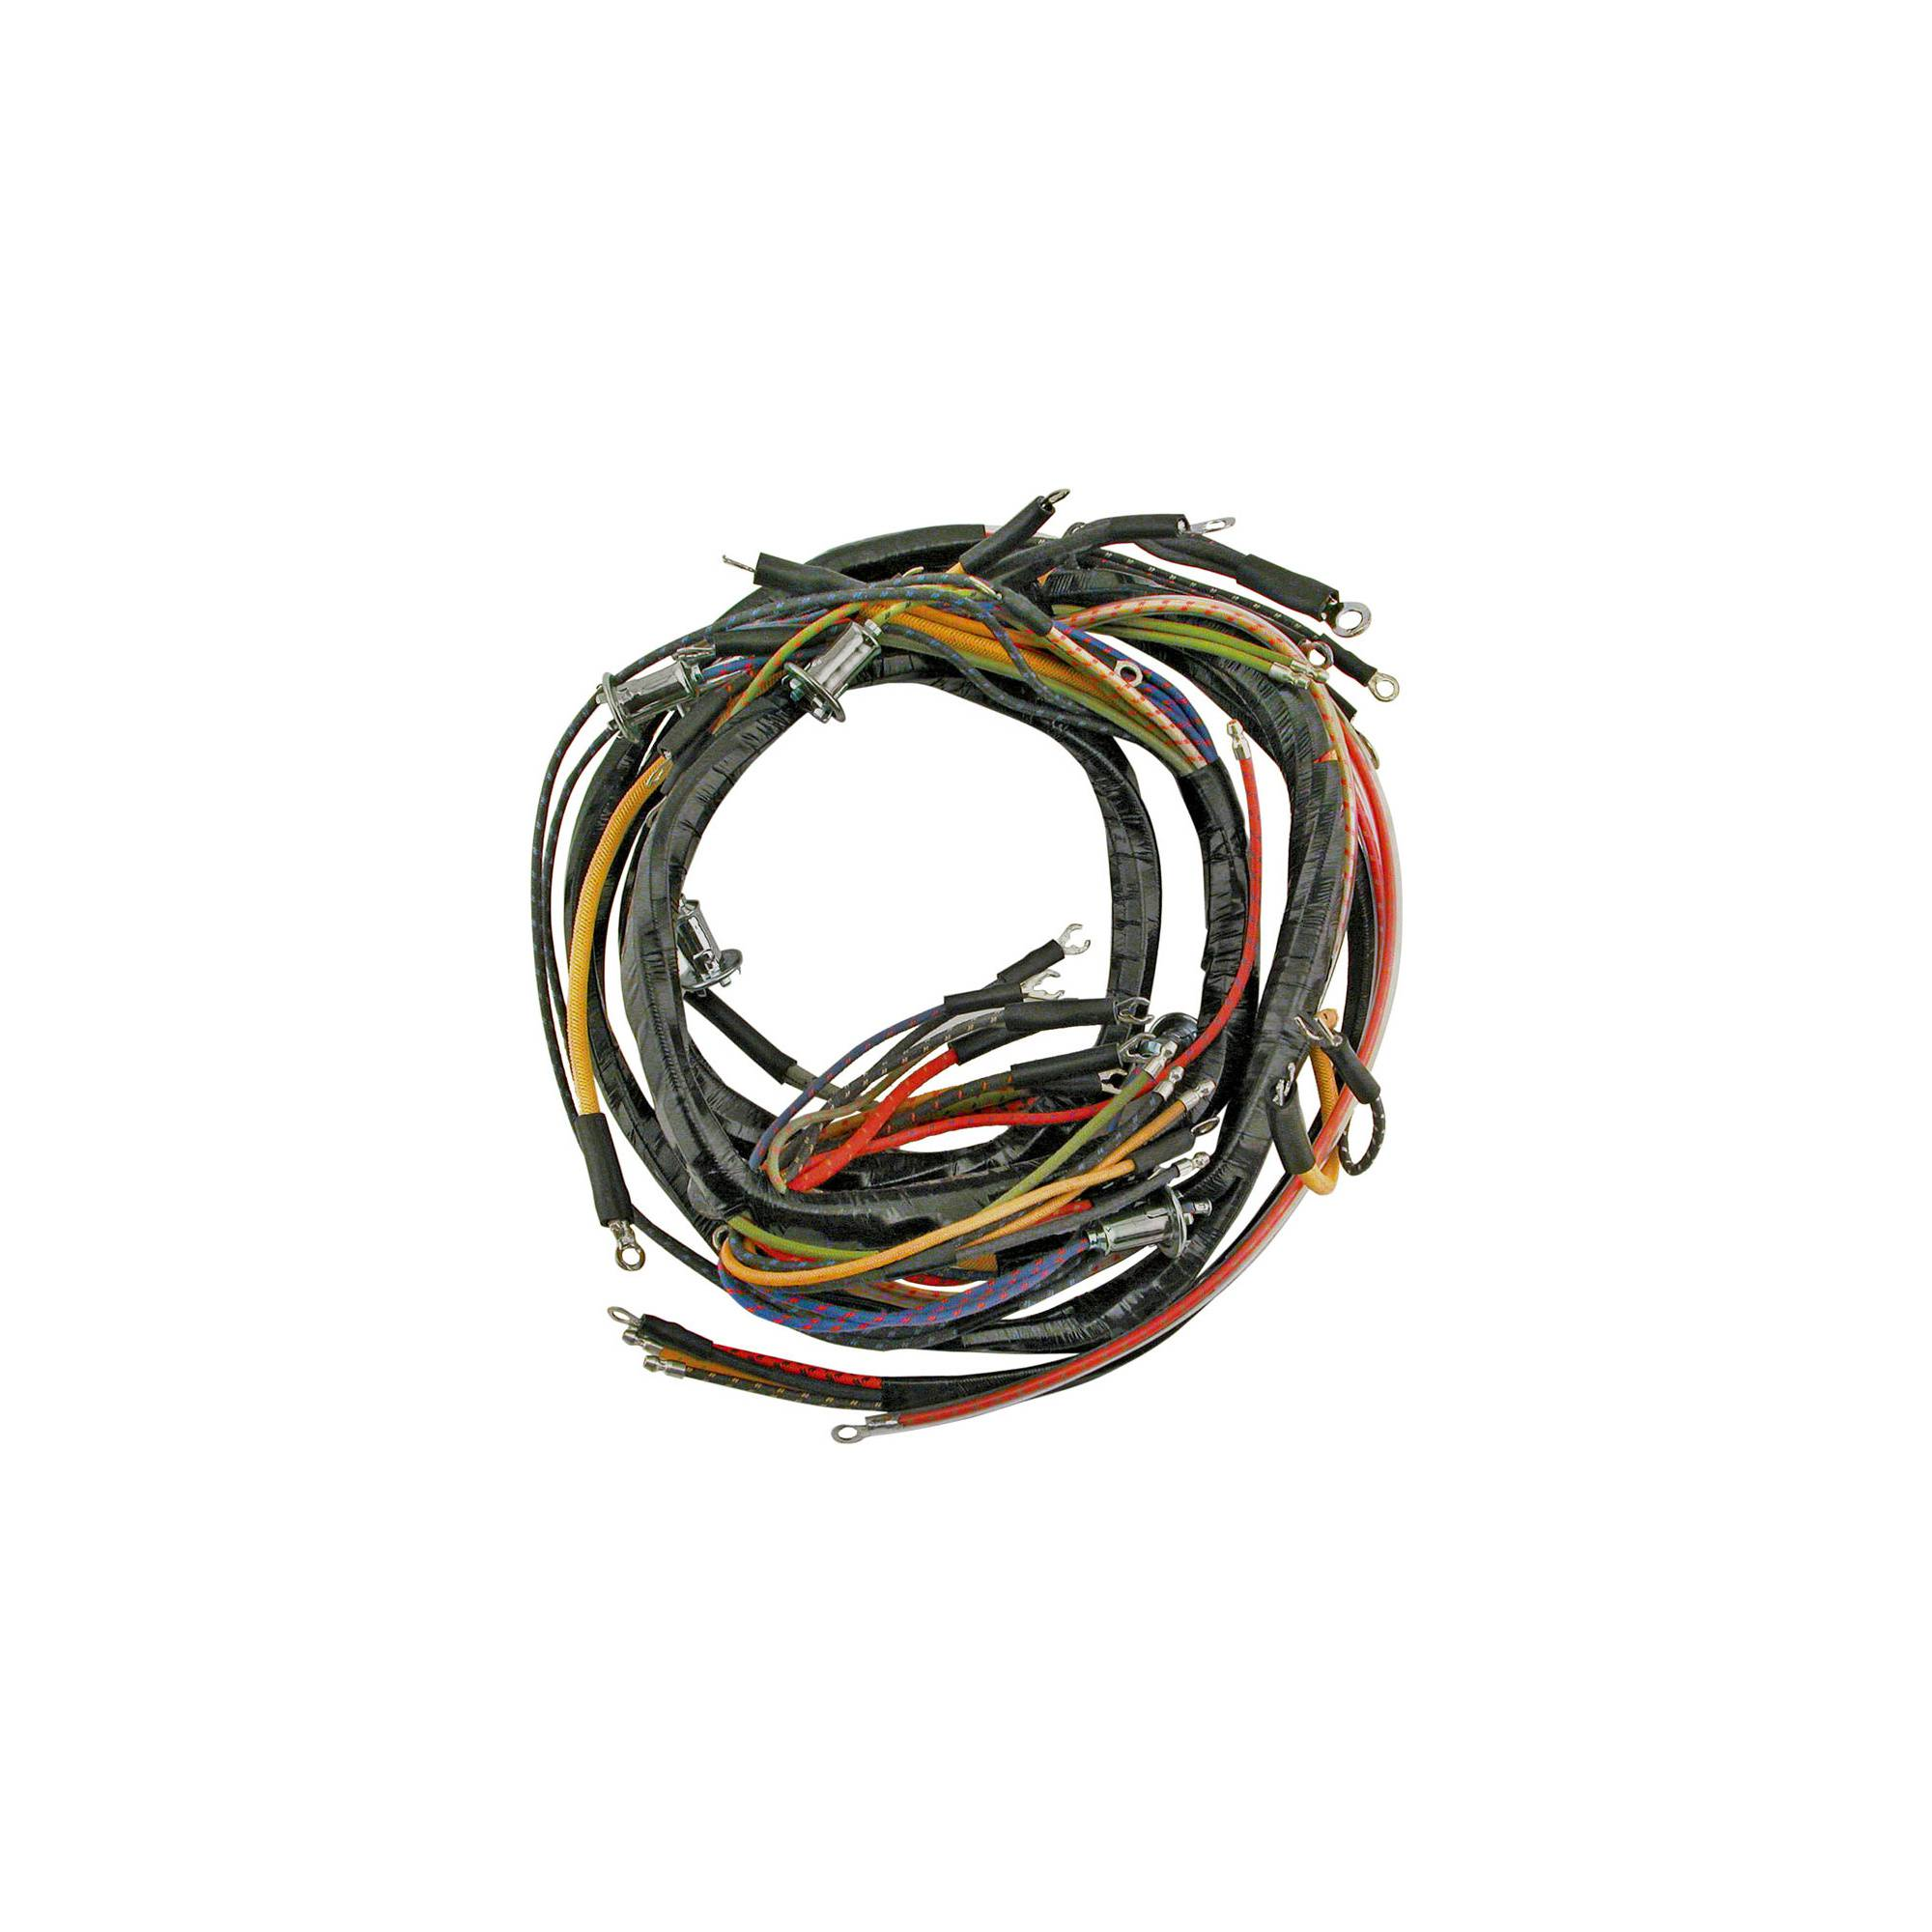 [SCHEMATICS_49CH]  MACs Auto Parts Premier Products 49-10734 Dash Wiring Harness - Ford V8  Only - Walmart.com | Ford Wiring Harness Parts |  | Walmart.com